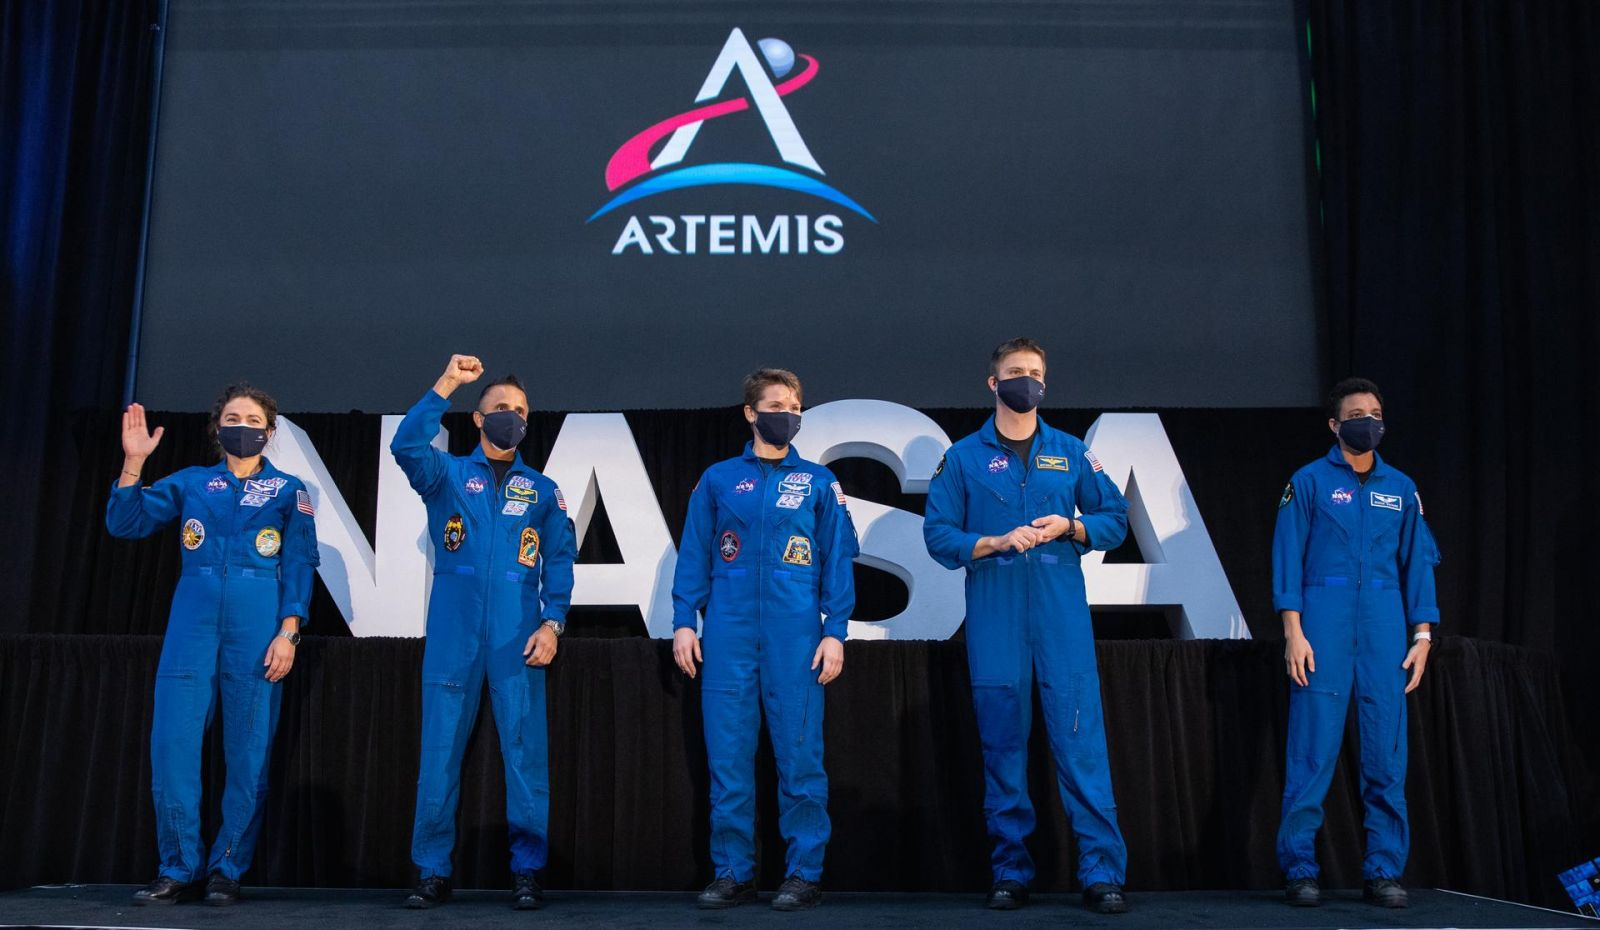 "From left to right: NASA astronauts Jessica Meir, Joseph Acaba, Anne McClain, Matthew Dominick, and Jessica Watkins. These astronauts were introduced as part of the 18-member ""Artemis Team"" during a National Space Council meeting inside the Apollo/Saturn V Center at the Kennedy Space Center Visitor Complex in Florida on Dec. 9, 2020. Credit: NASA"